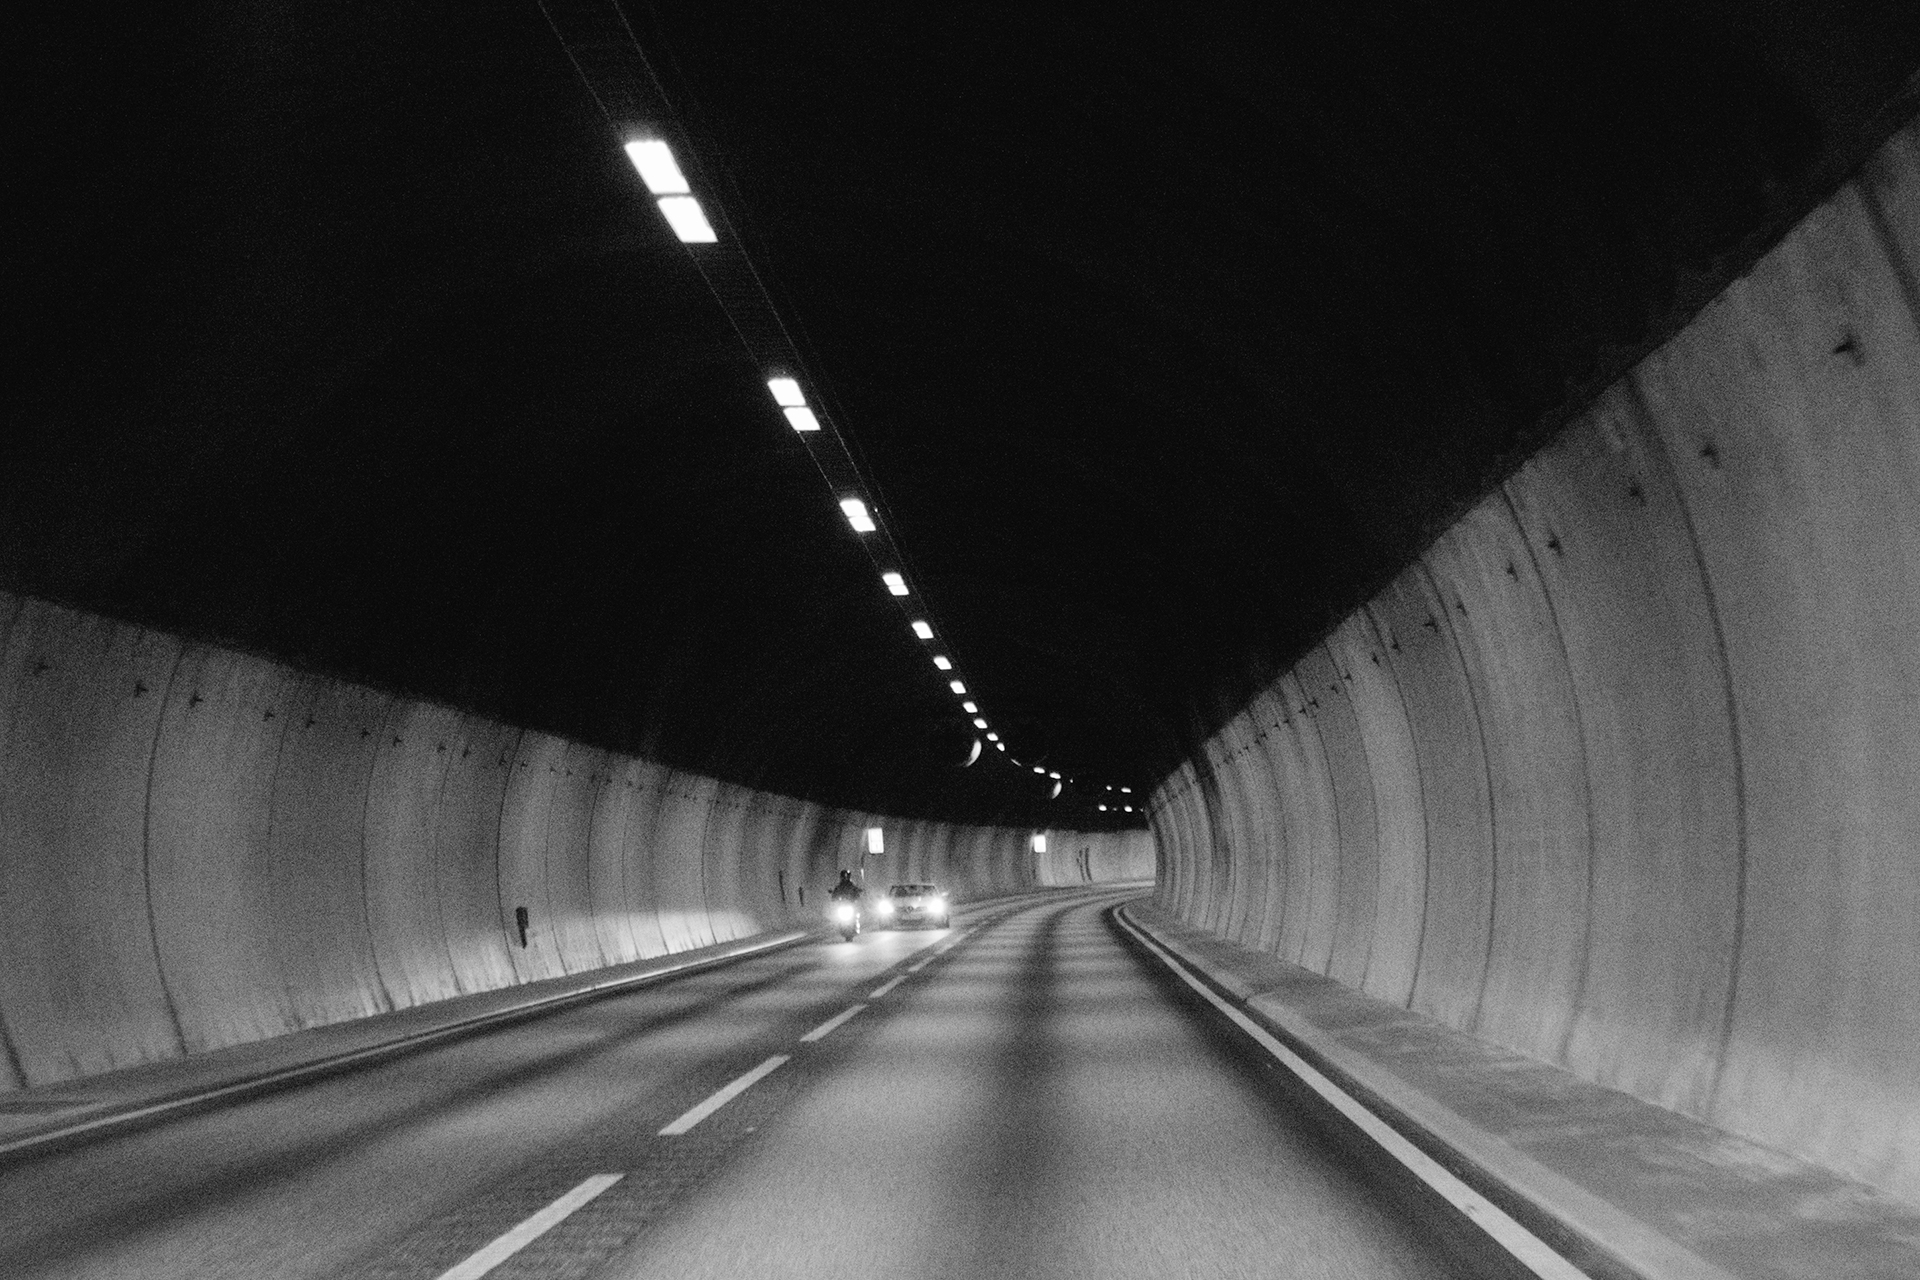 Tunel in black and white, down, underground, tune, pipe, tunnel, road, pavement, cars, motorbike, motorcycle, lights, black and white, automotive